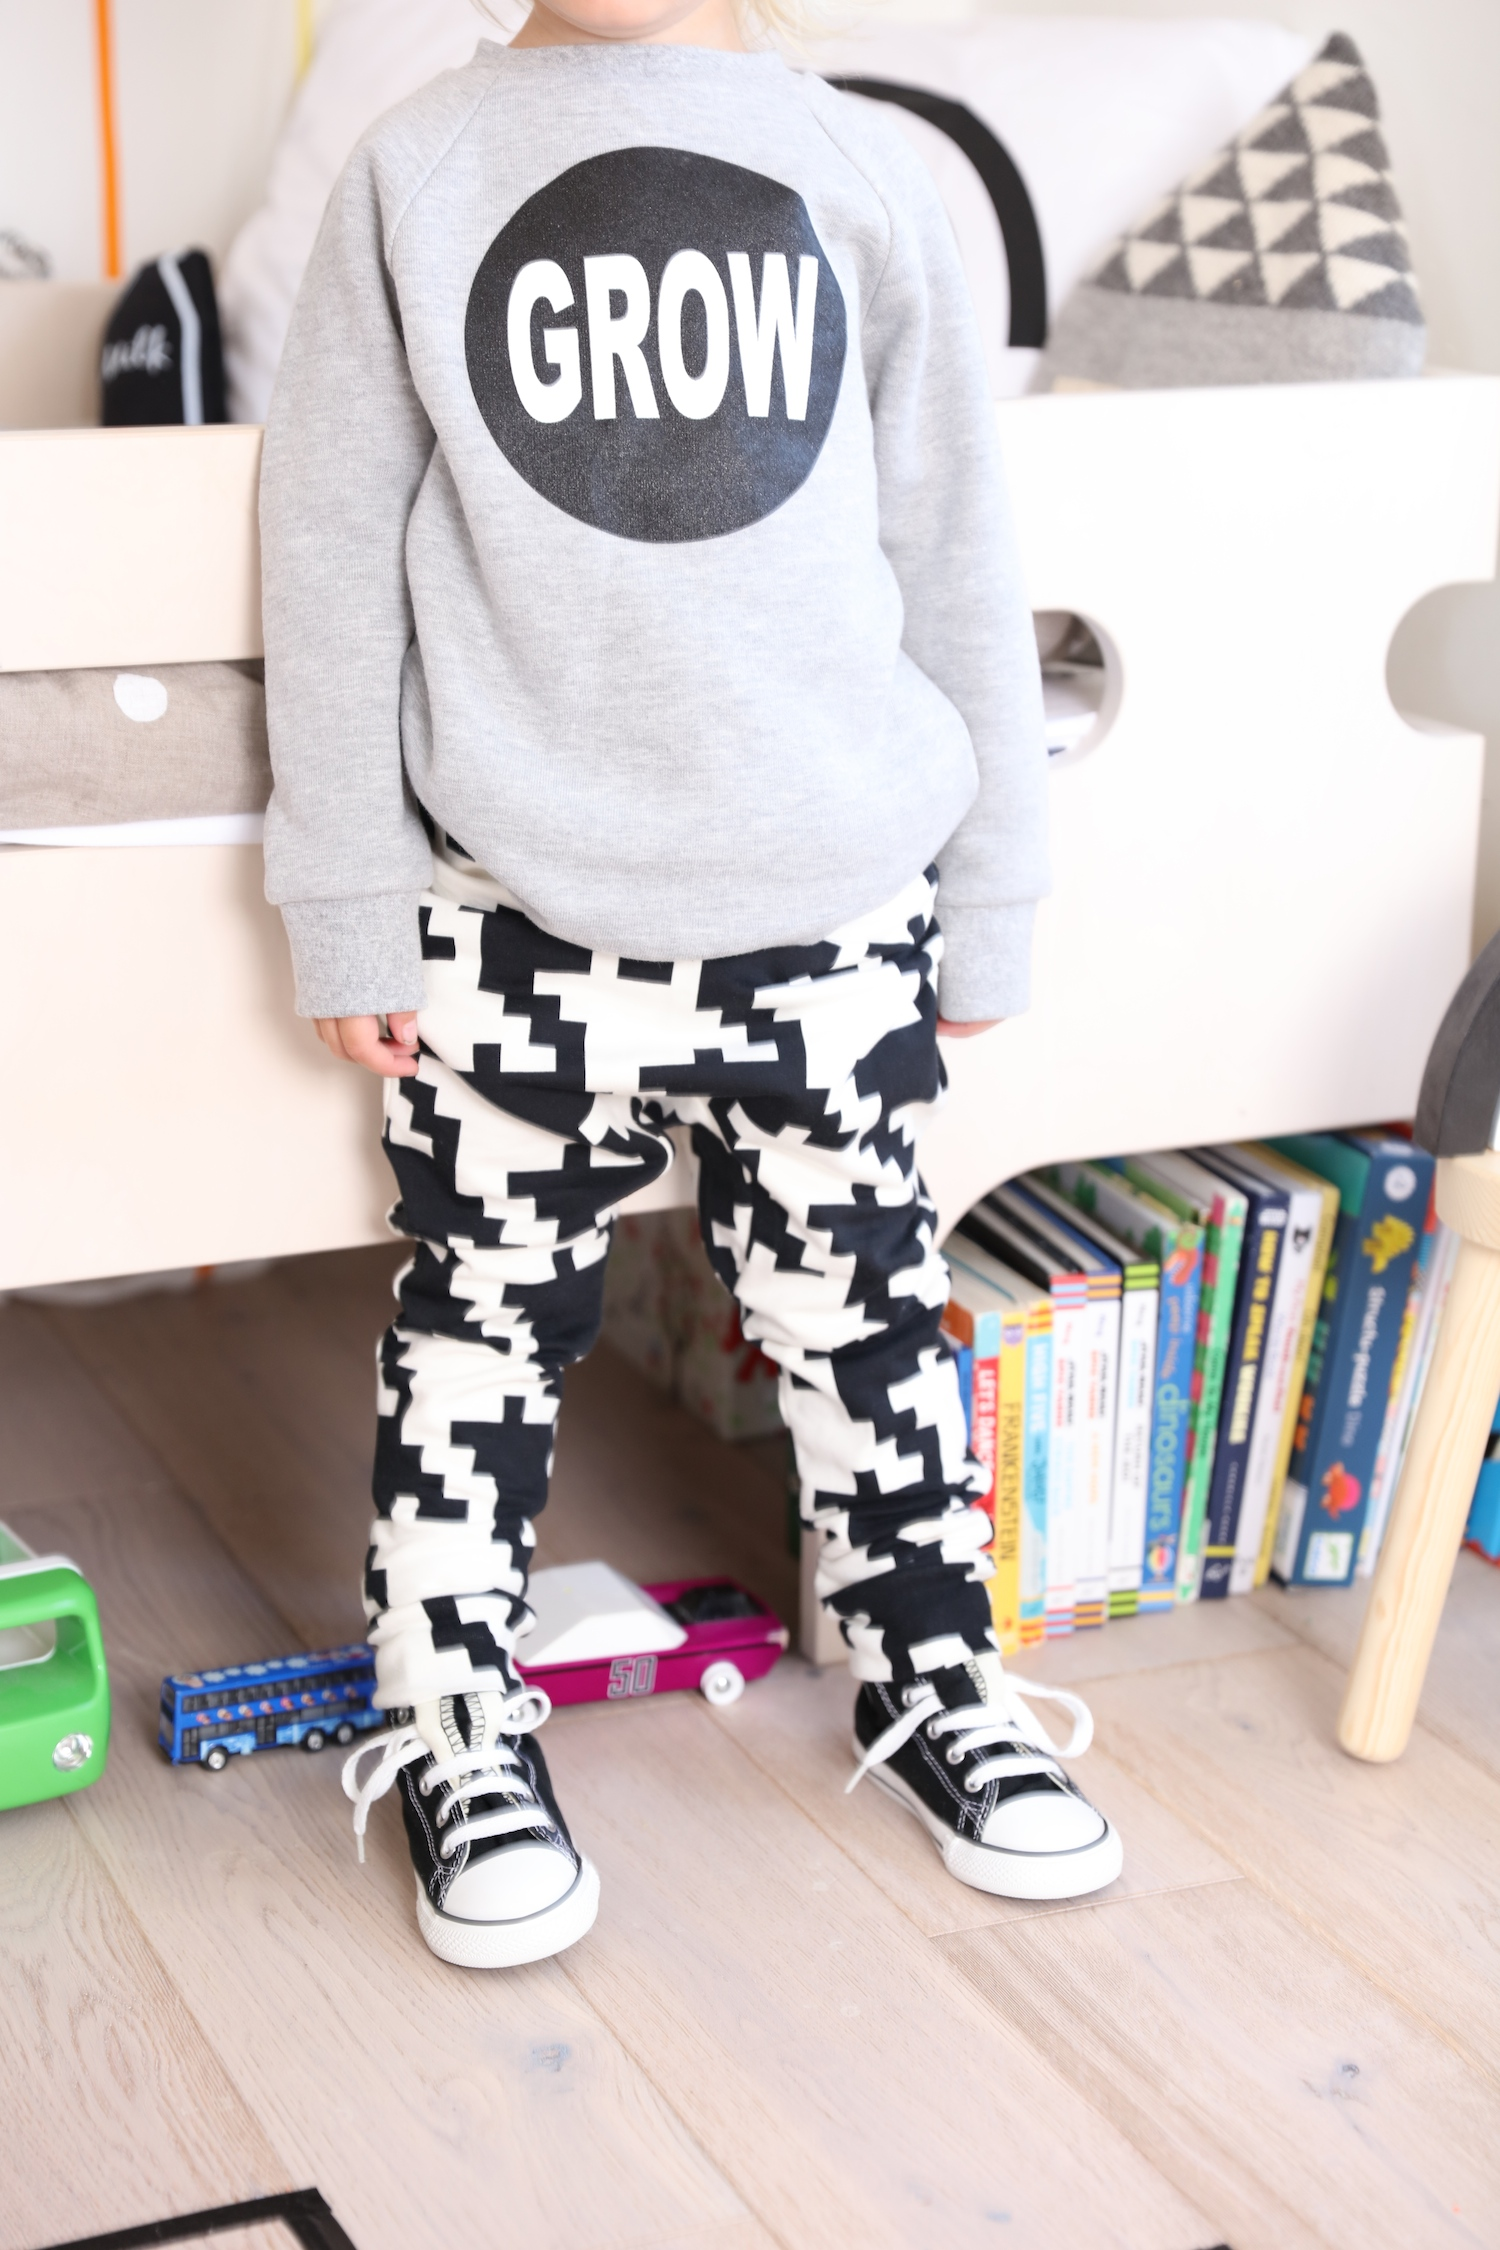 Space_invaders_trousers_little_man_happy_sweatshirt